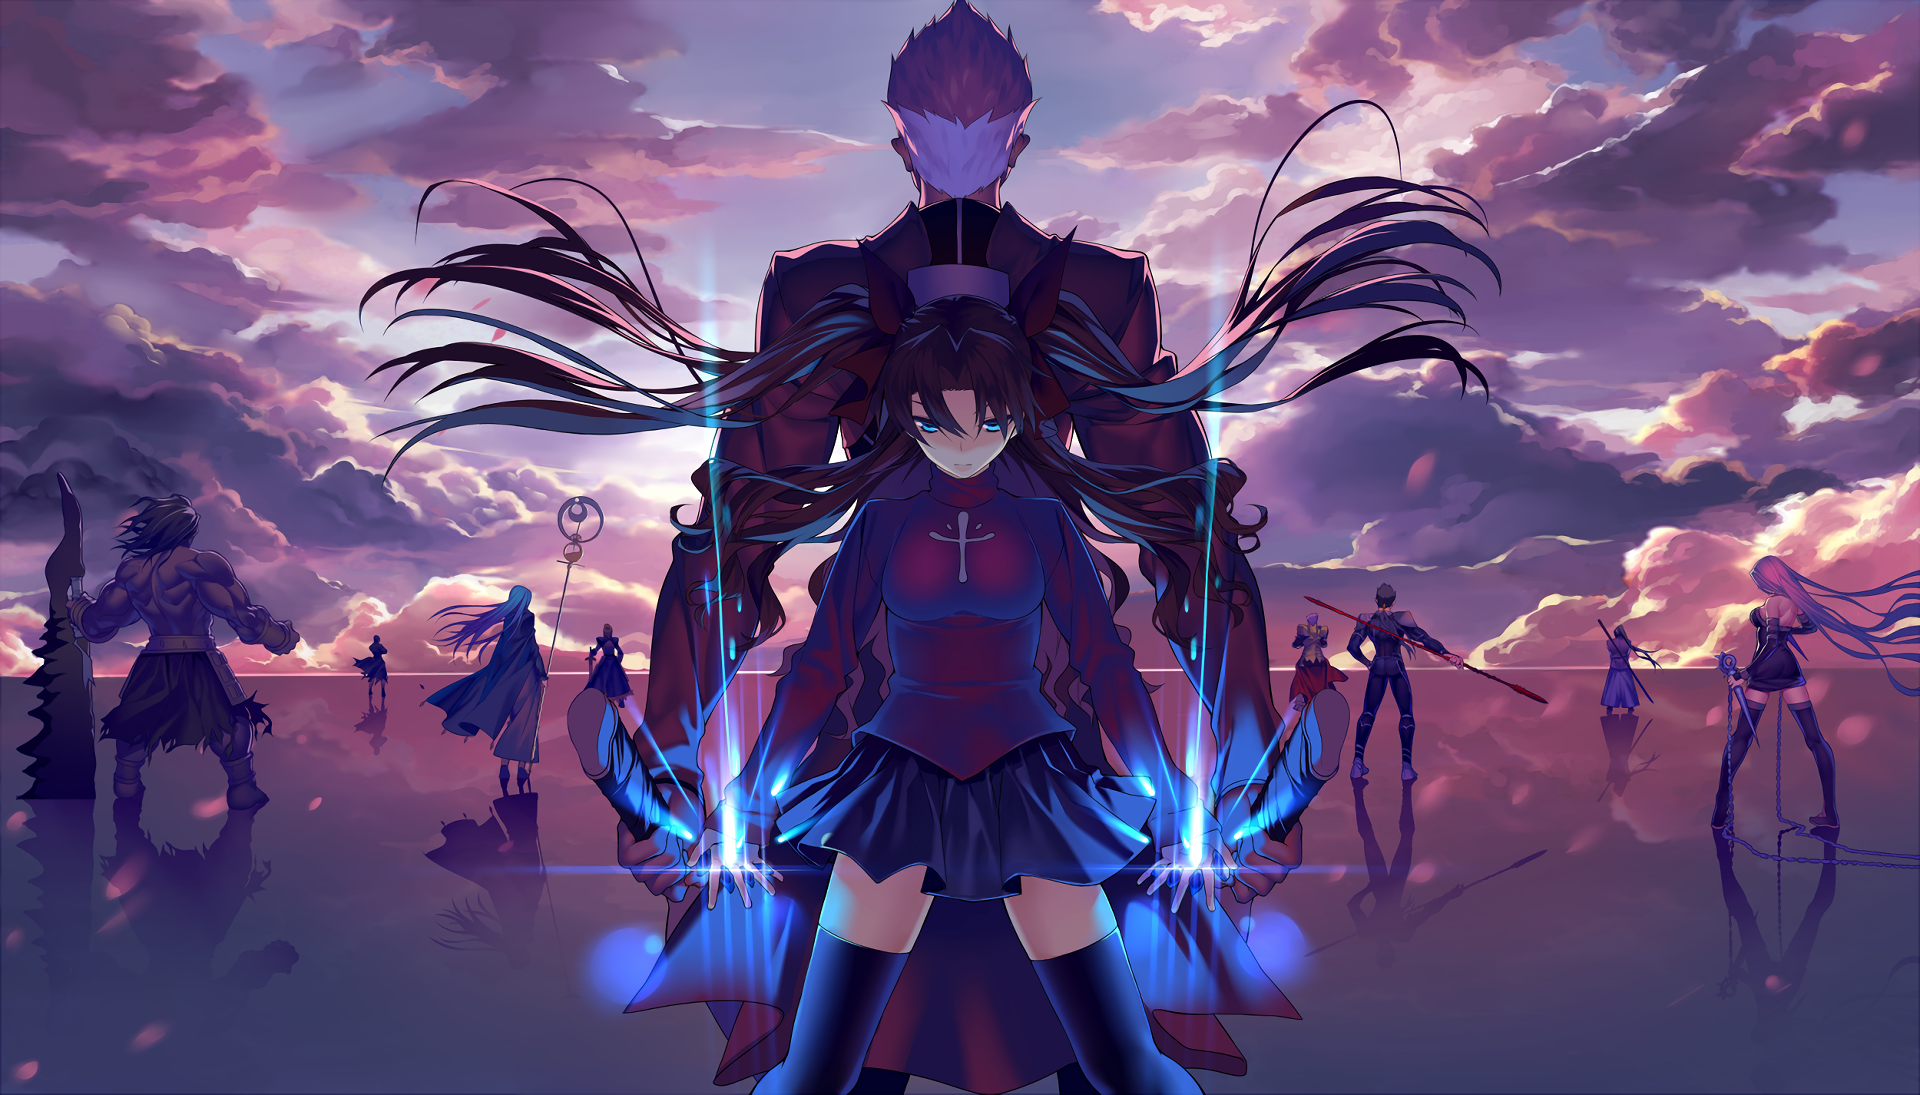 Download Fate Stay Night Wallpaper Hd Backgrounds Download Itl Cat